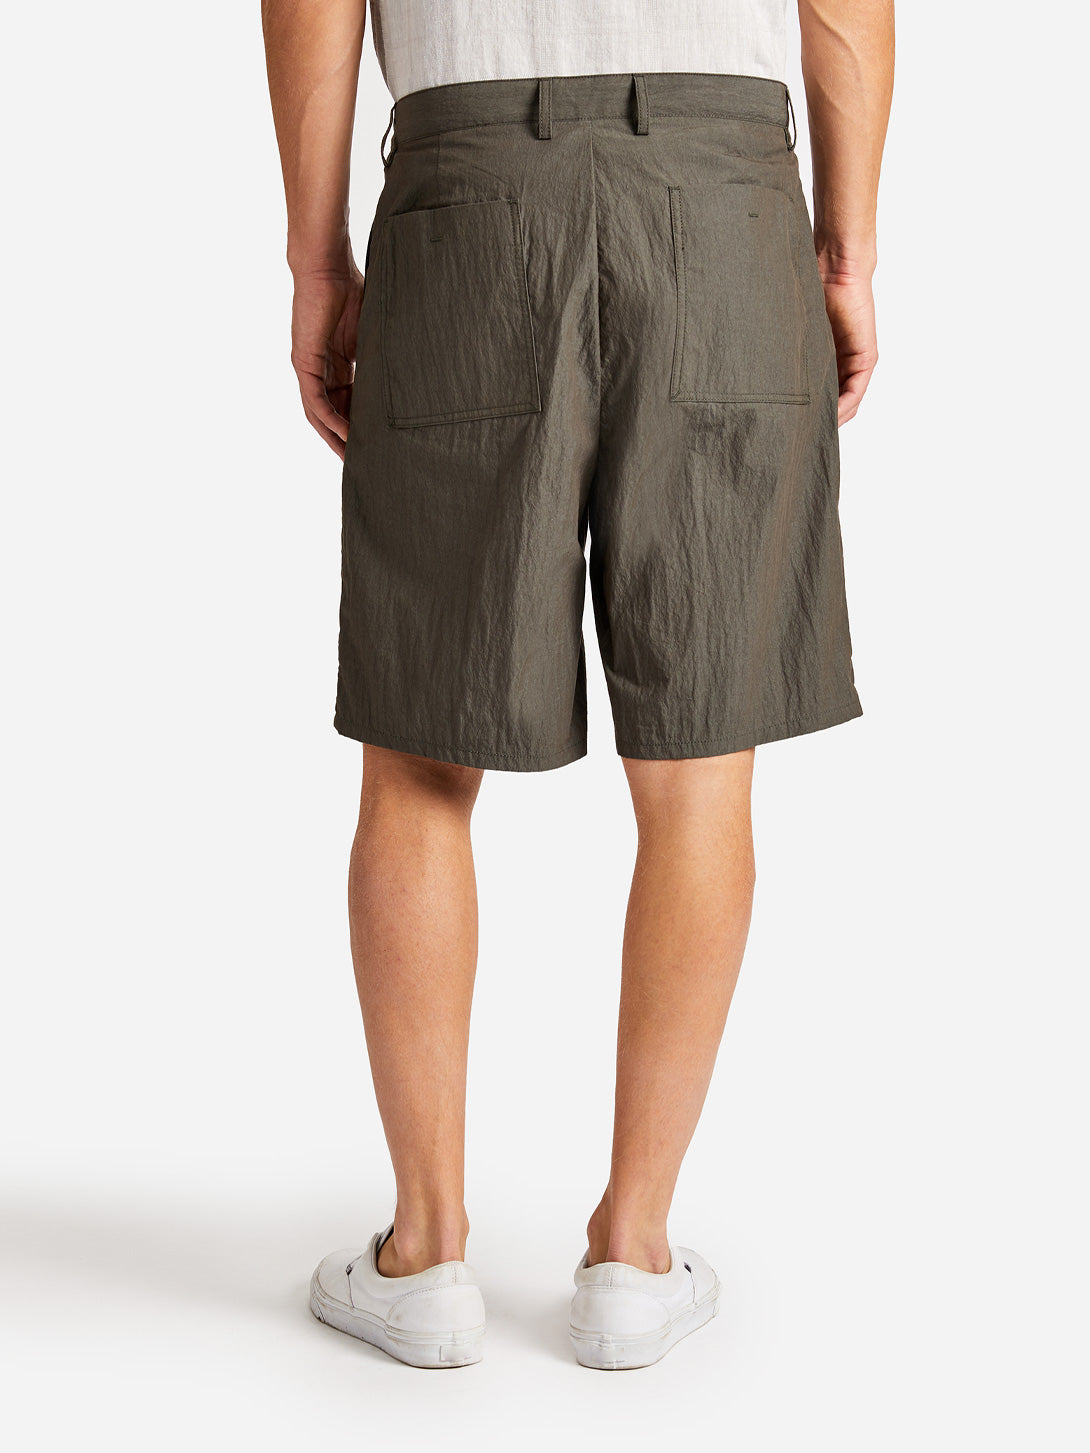 ACADIA SHORT OLIVE ONS CLOTHING GREY LABEL